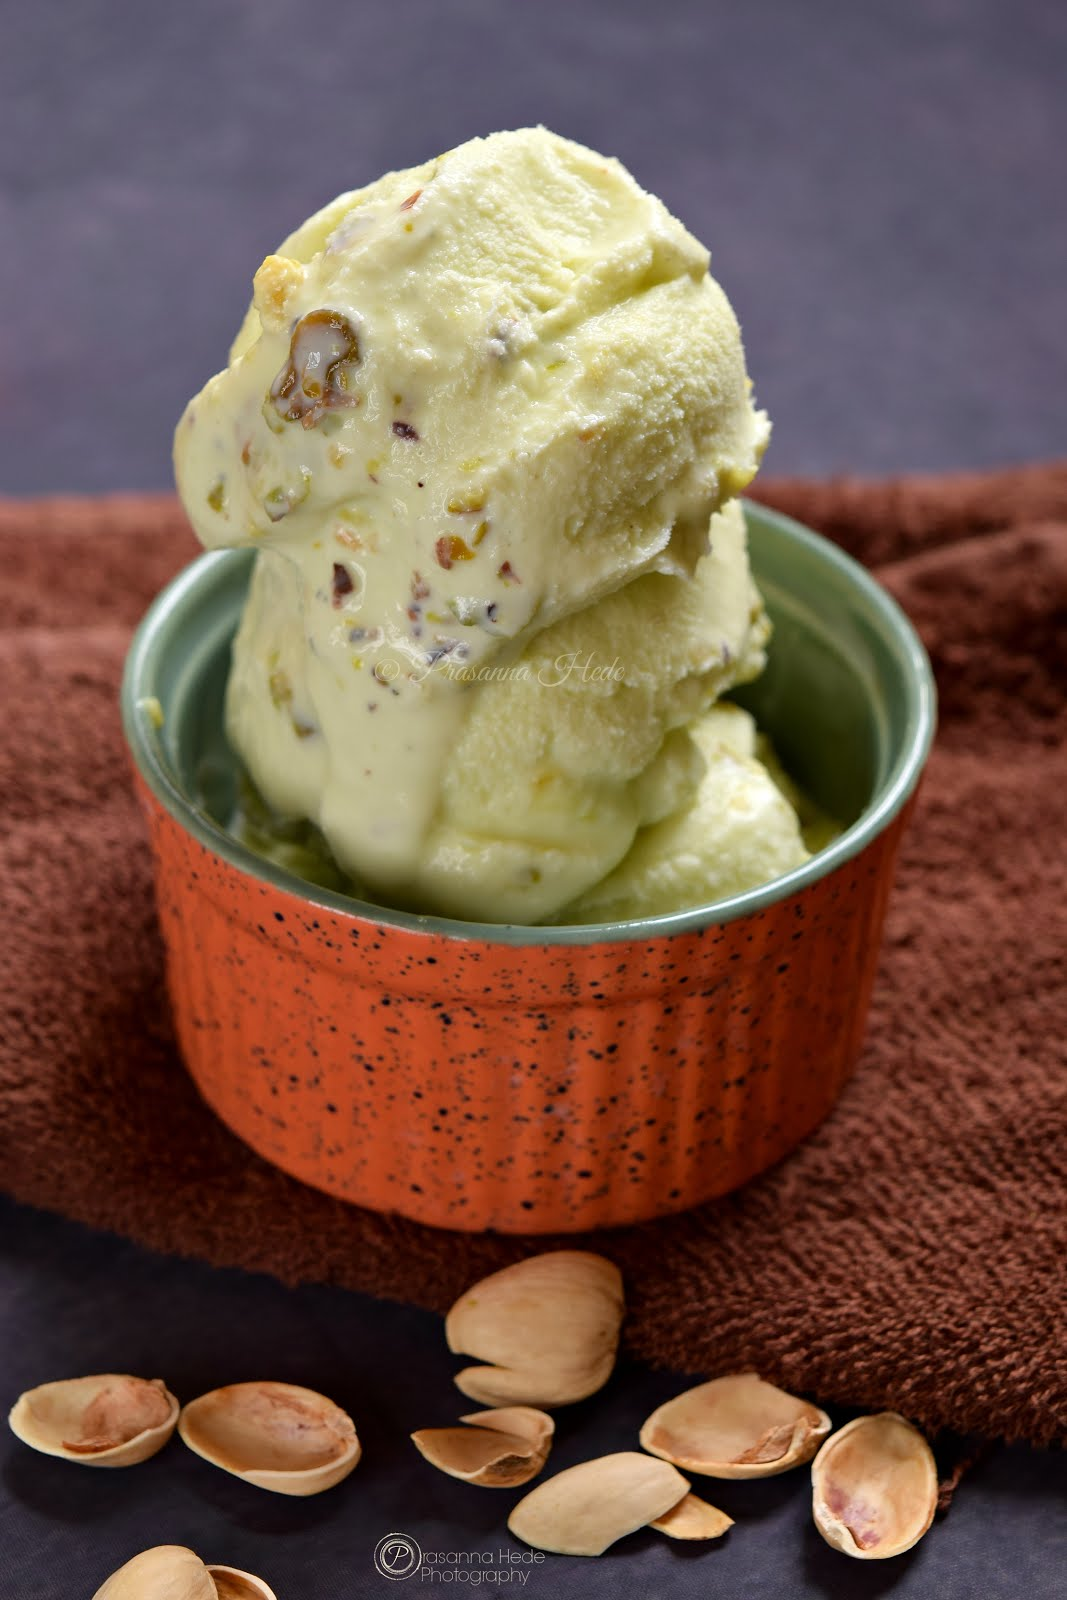 Pistachio Pista Kulfi Icecream eggfree no-churn